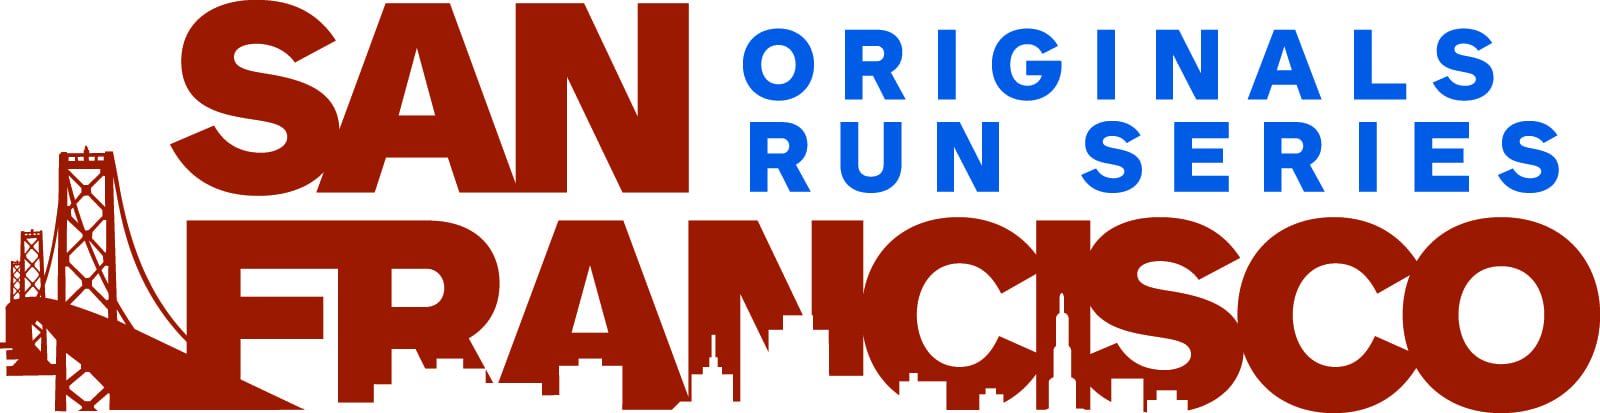 San Francisco Original Run Series